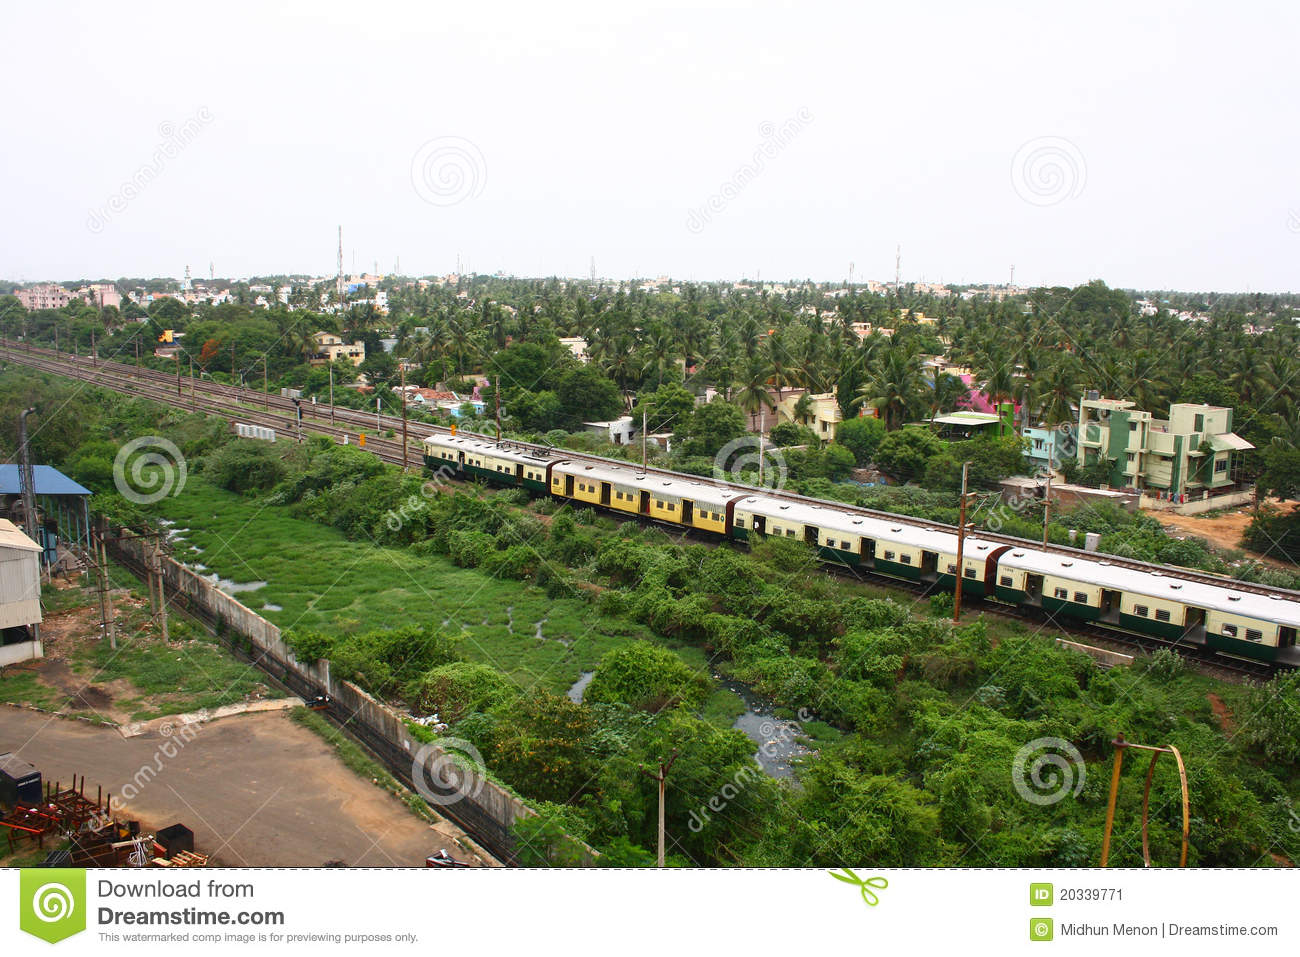 Top Things to Do Near Chennai Central Railway Station, India